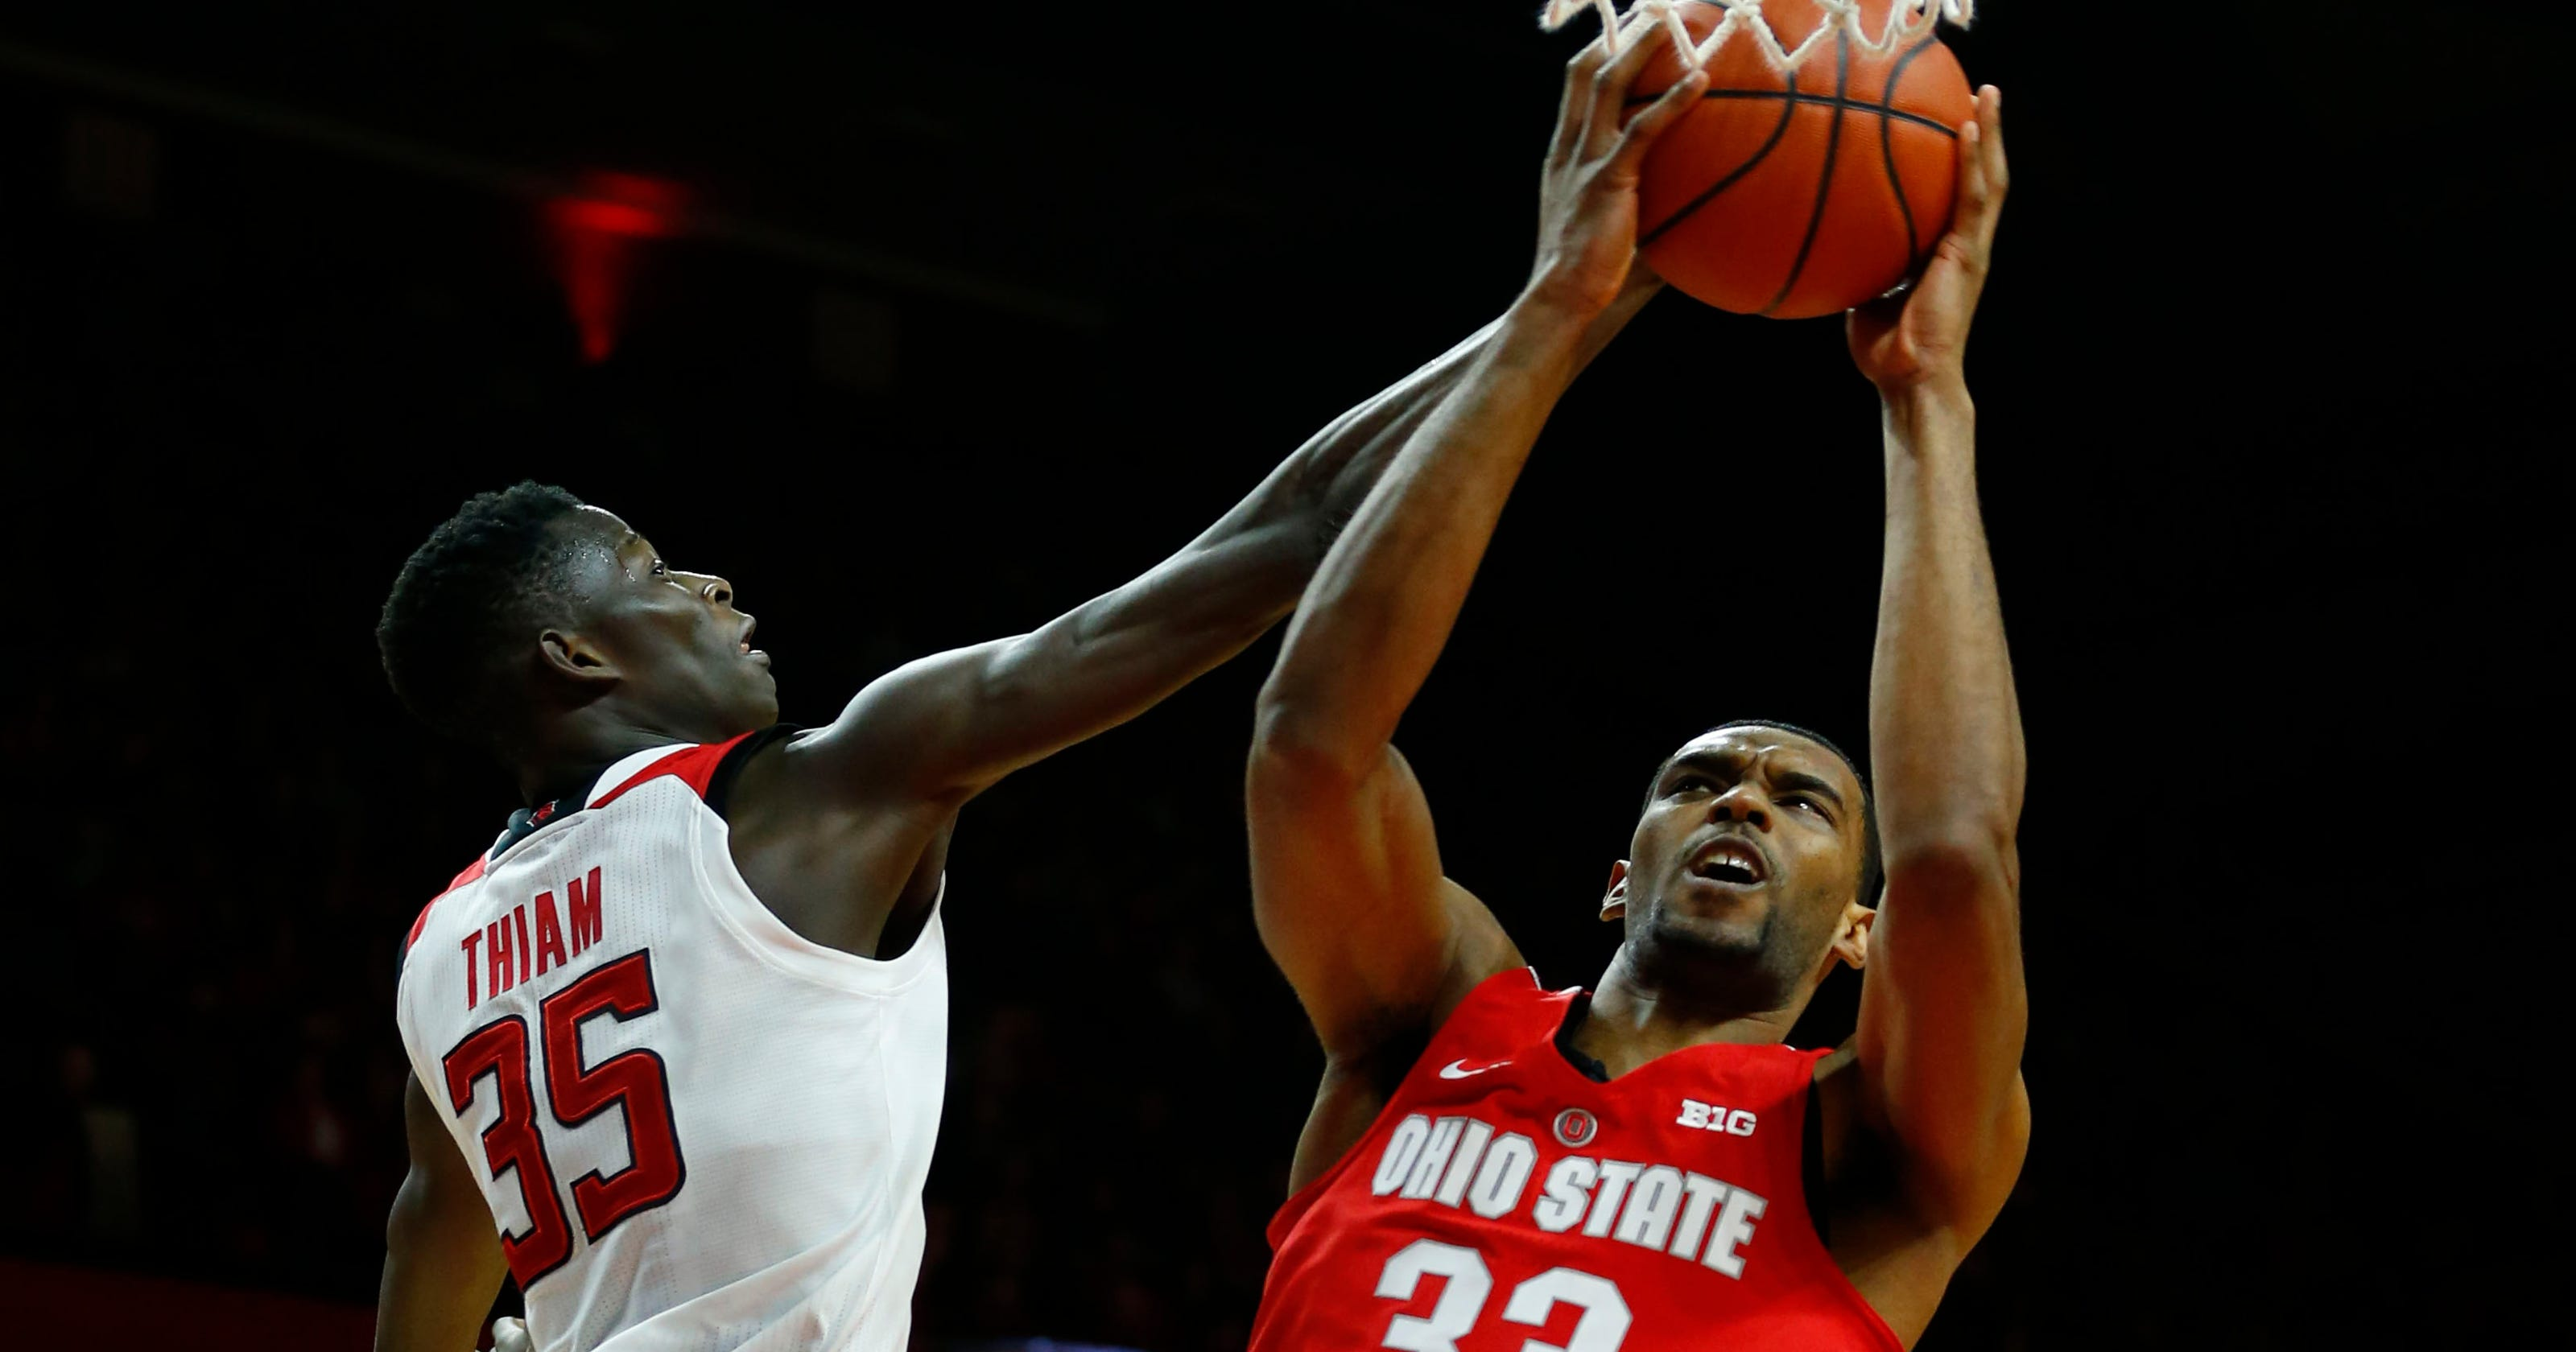 Rutgers basketball: Ohio State game coverage